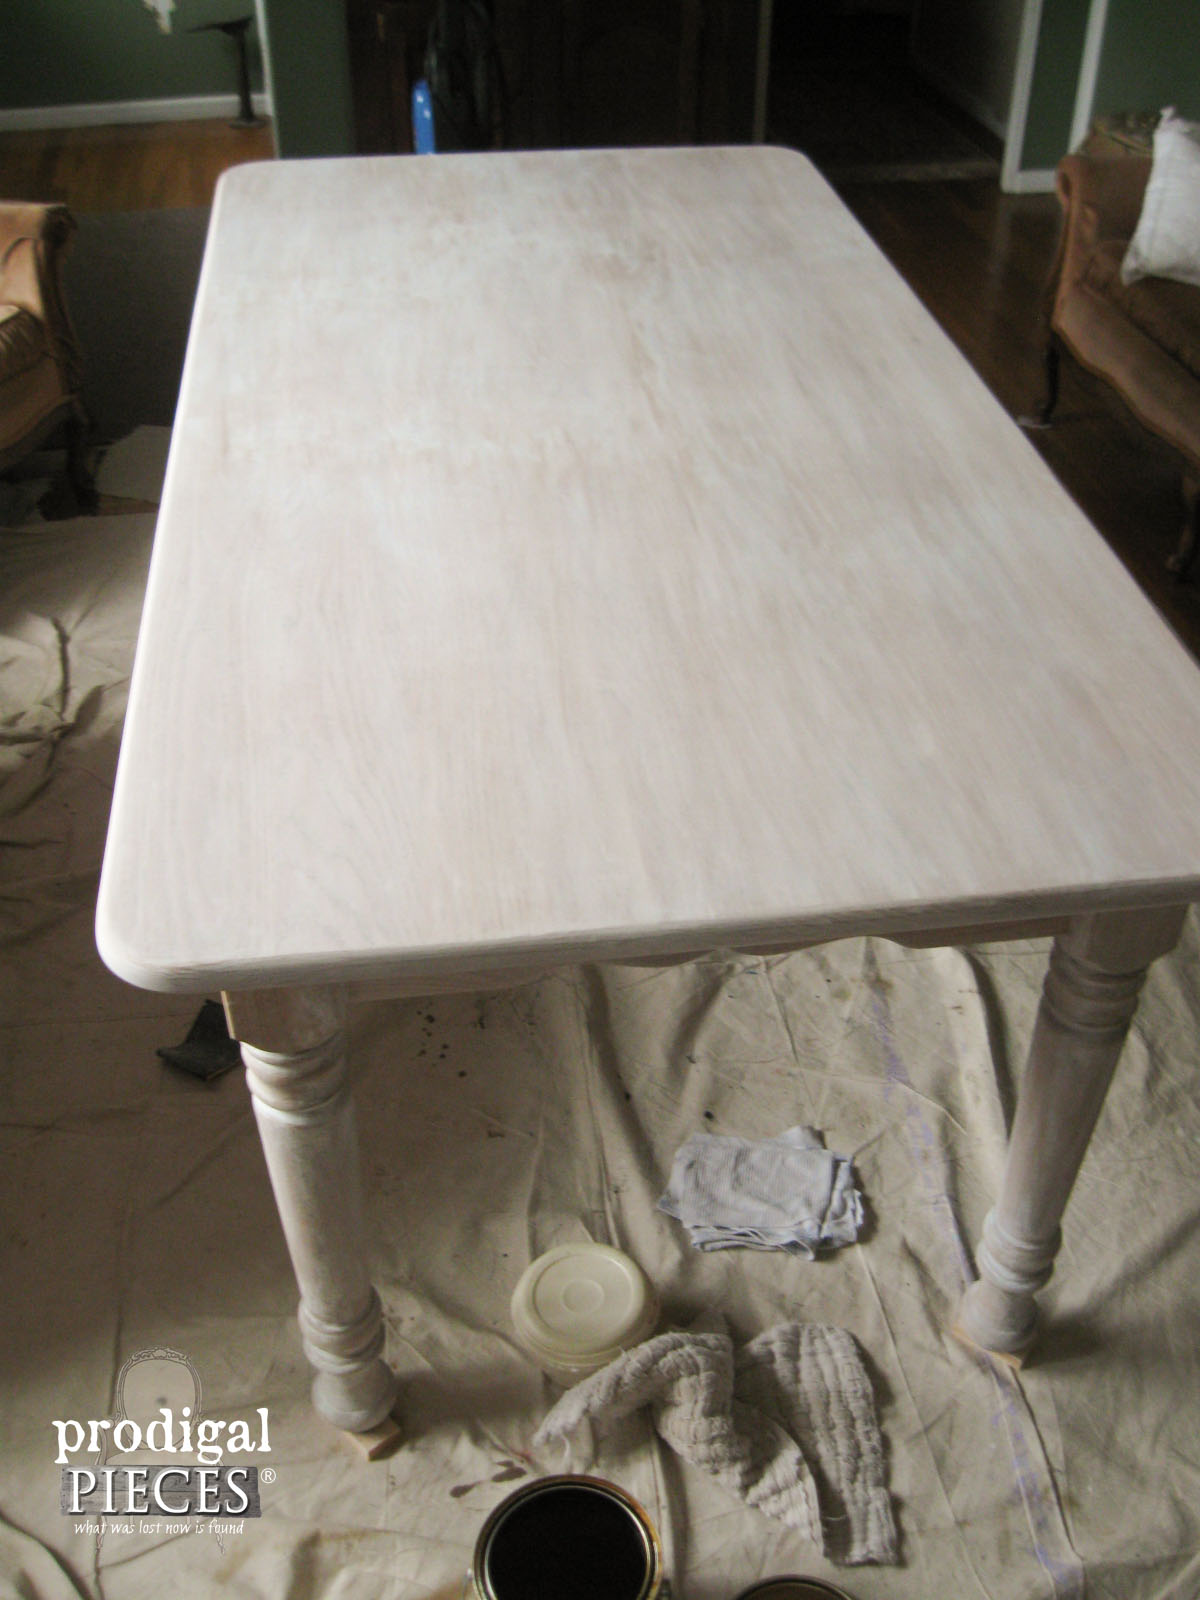 Whitewashed or Limewashed Wood Prodigal Pieces